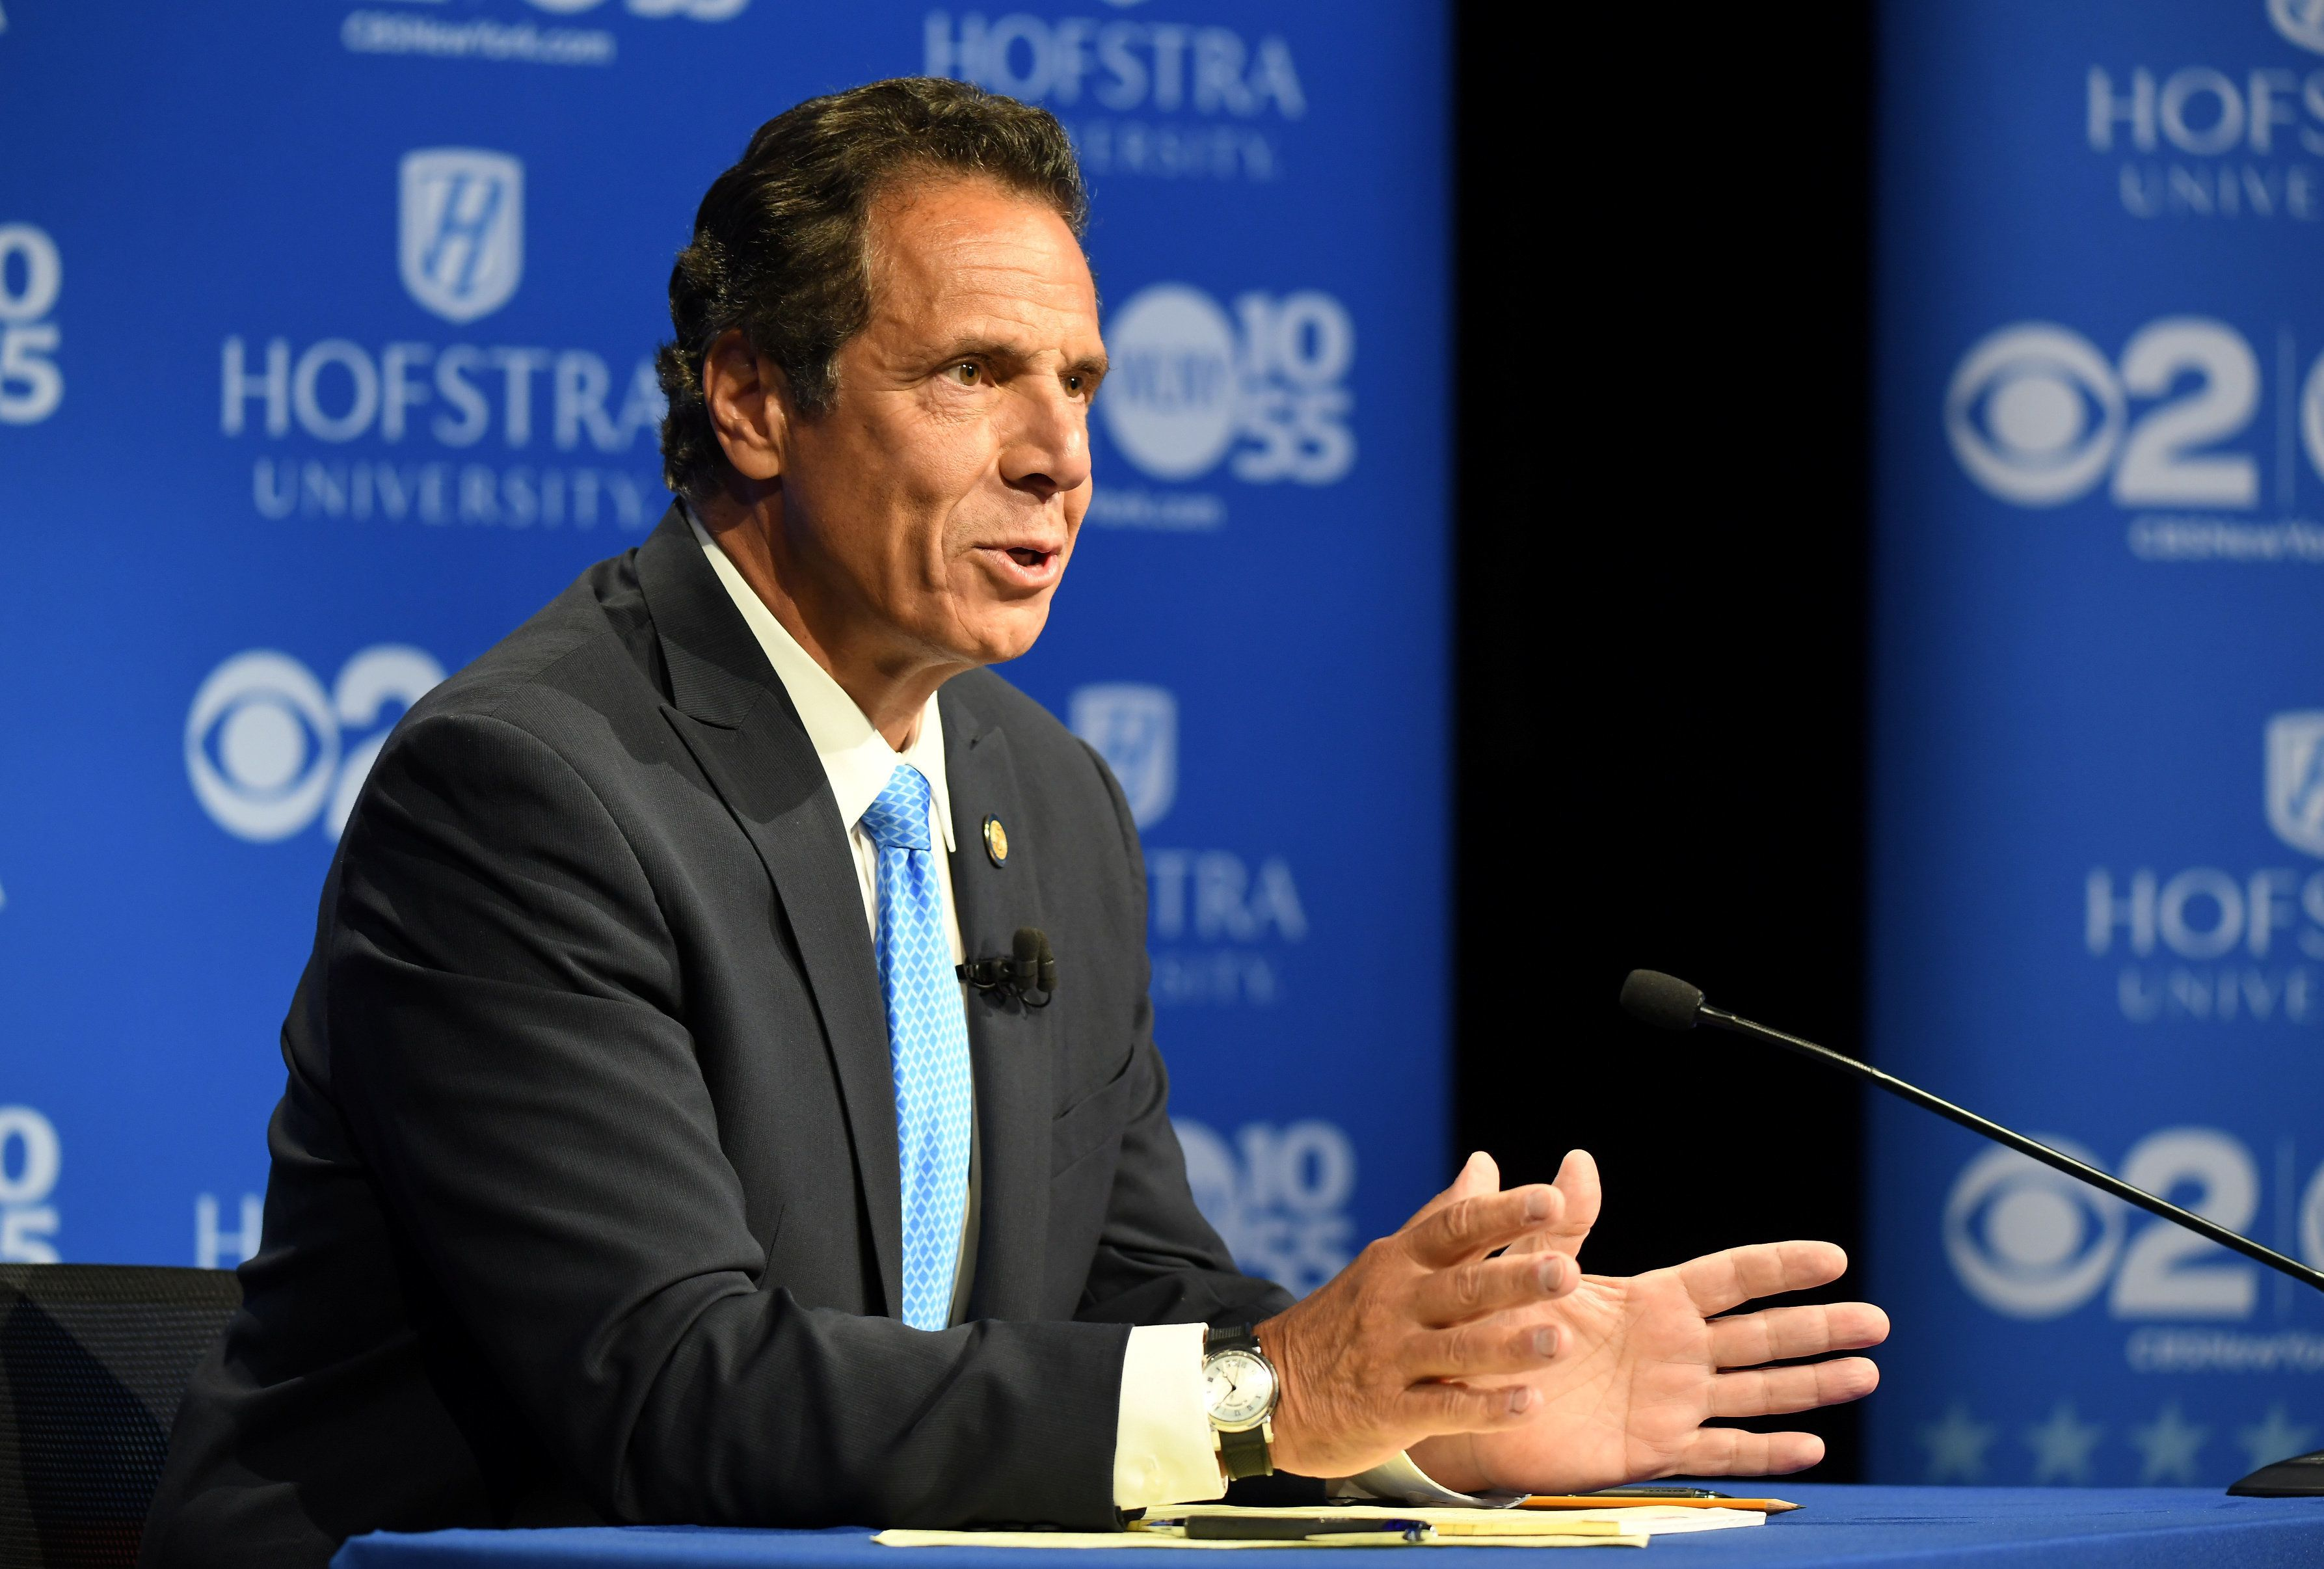 New York Gov. Andrew Cuomo speaks at the Democratic gubernatorial primary debate at Hofstra University in Hempstead on Aug. 2